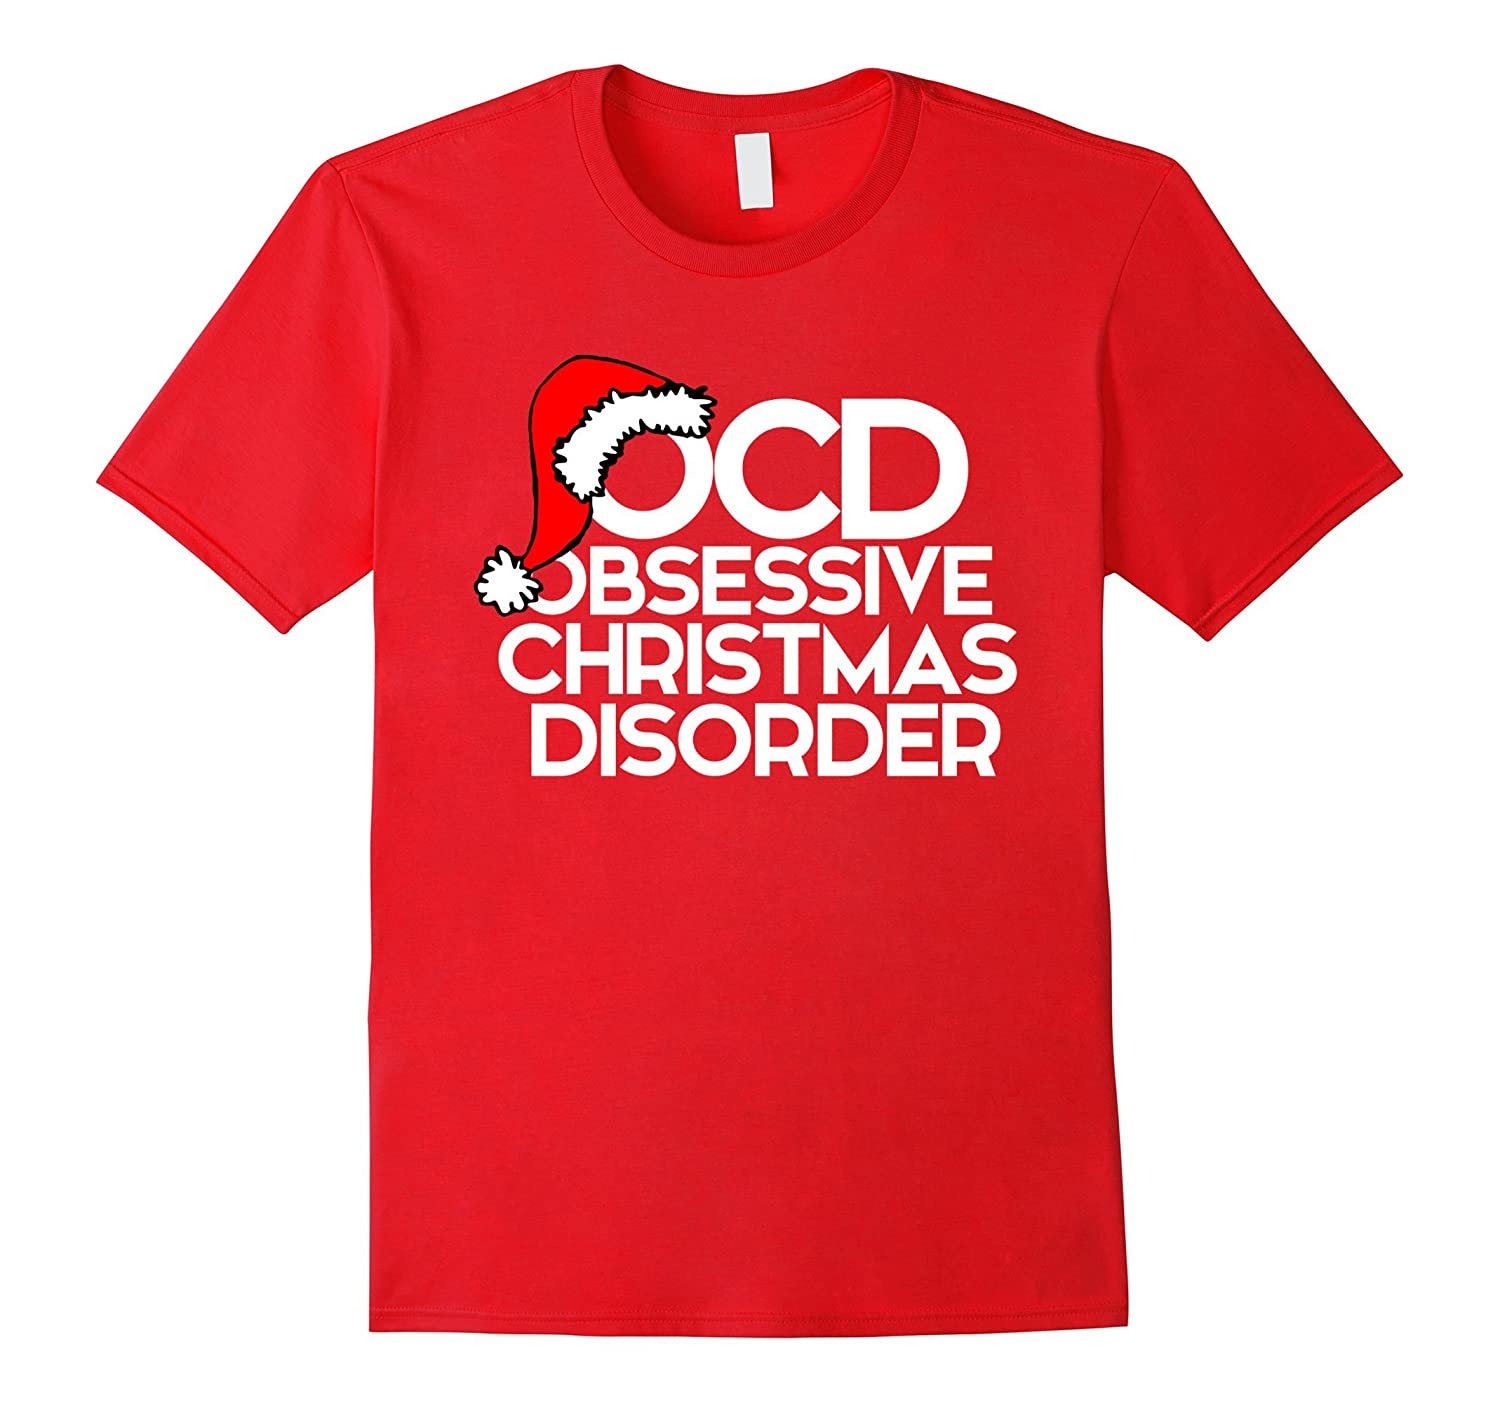 OCD Obsessive Christmas Disorder shirt for xmas party-ANZ - Anztshirt